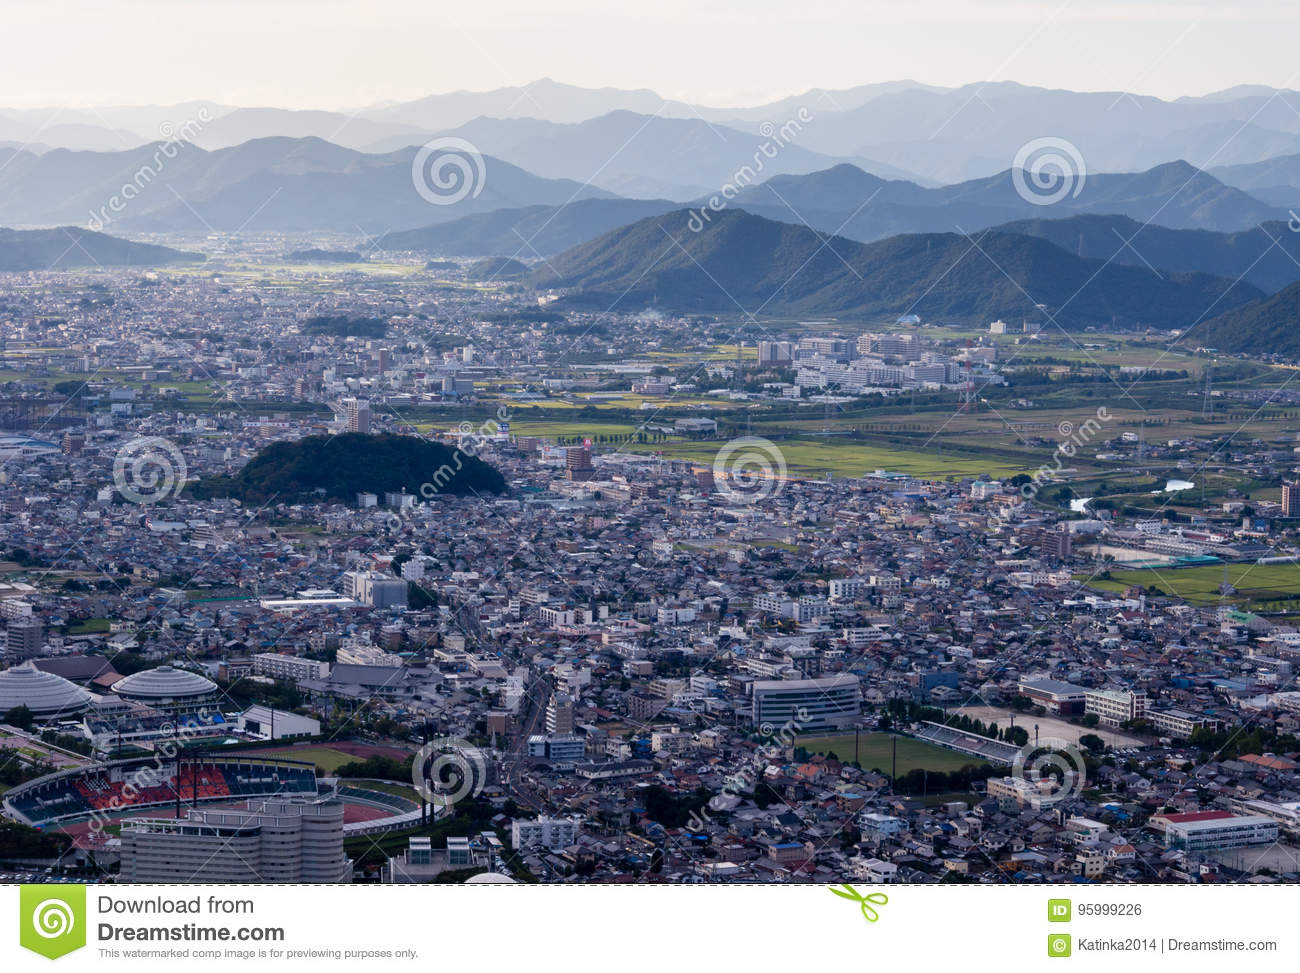 Panoramic view of Gifu city from the top of Gifu castle on Mount Kinka